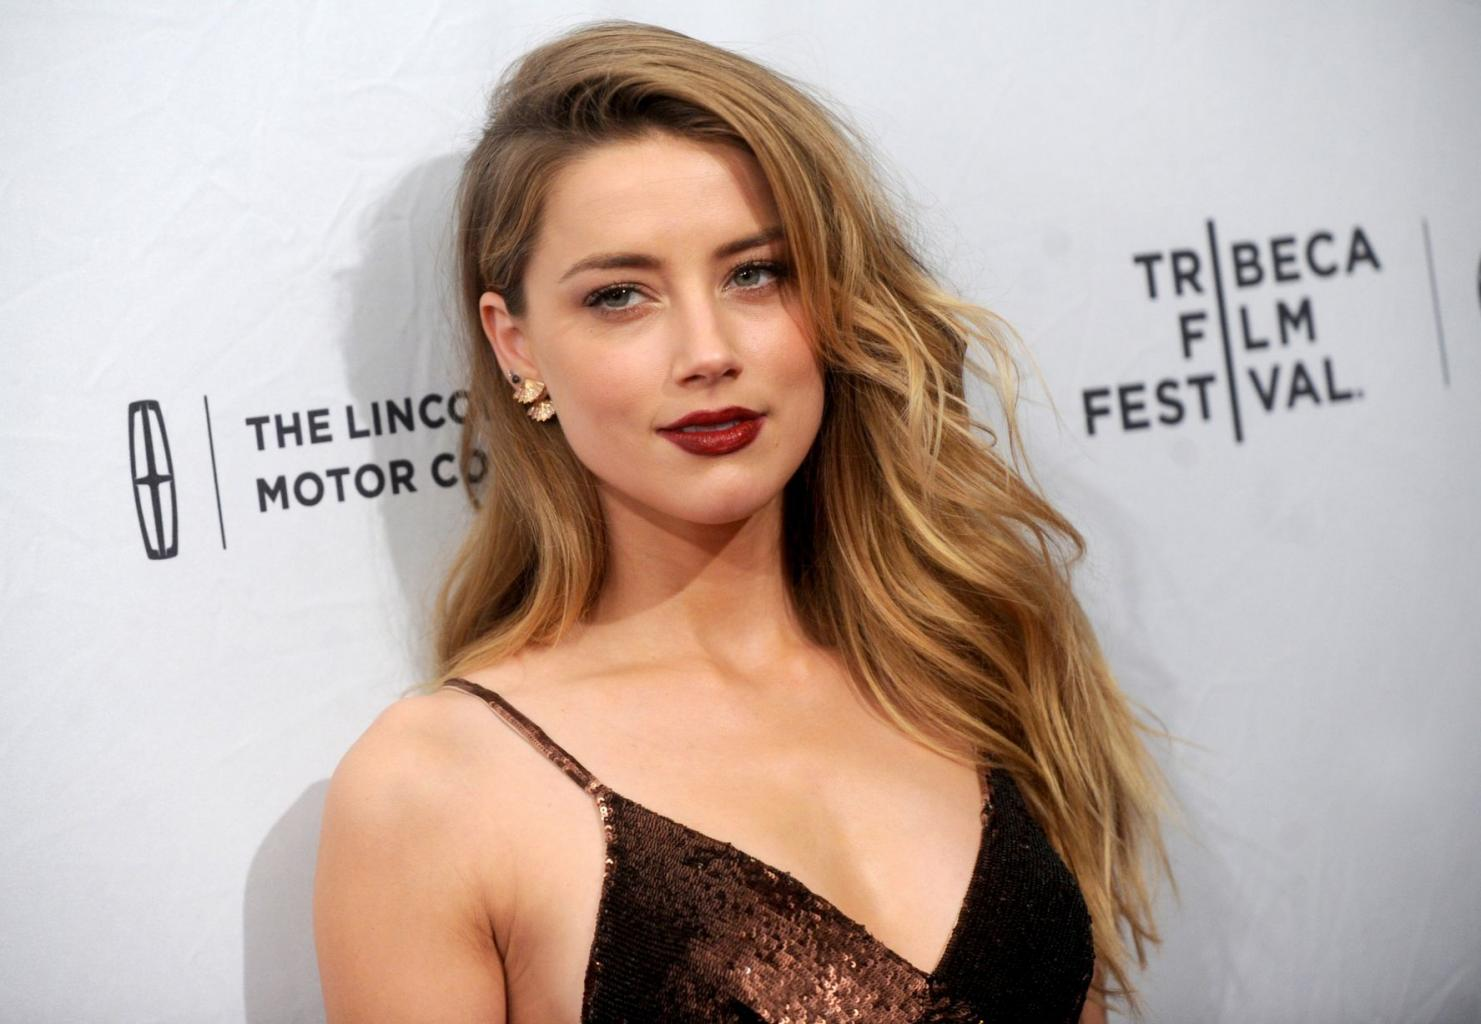 Amber Heard Gives Her Mum A Telling Off On The Red Carpet